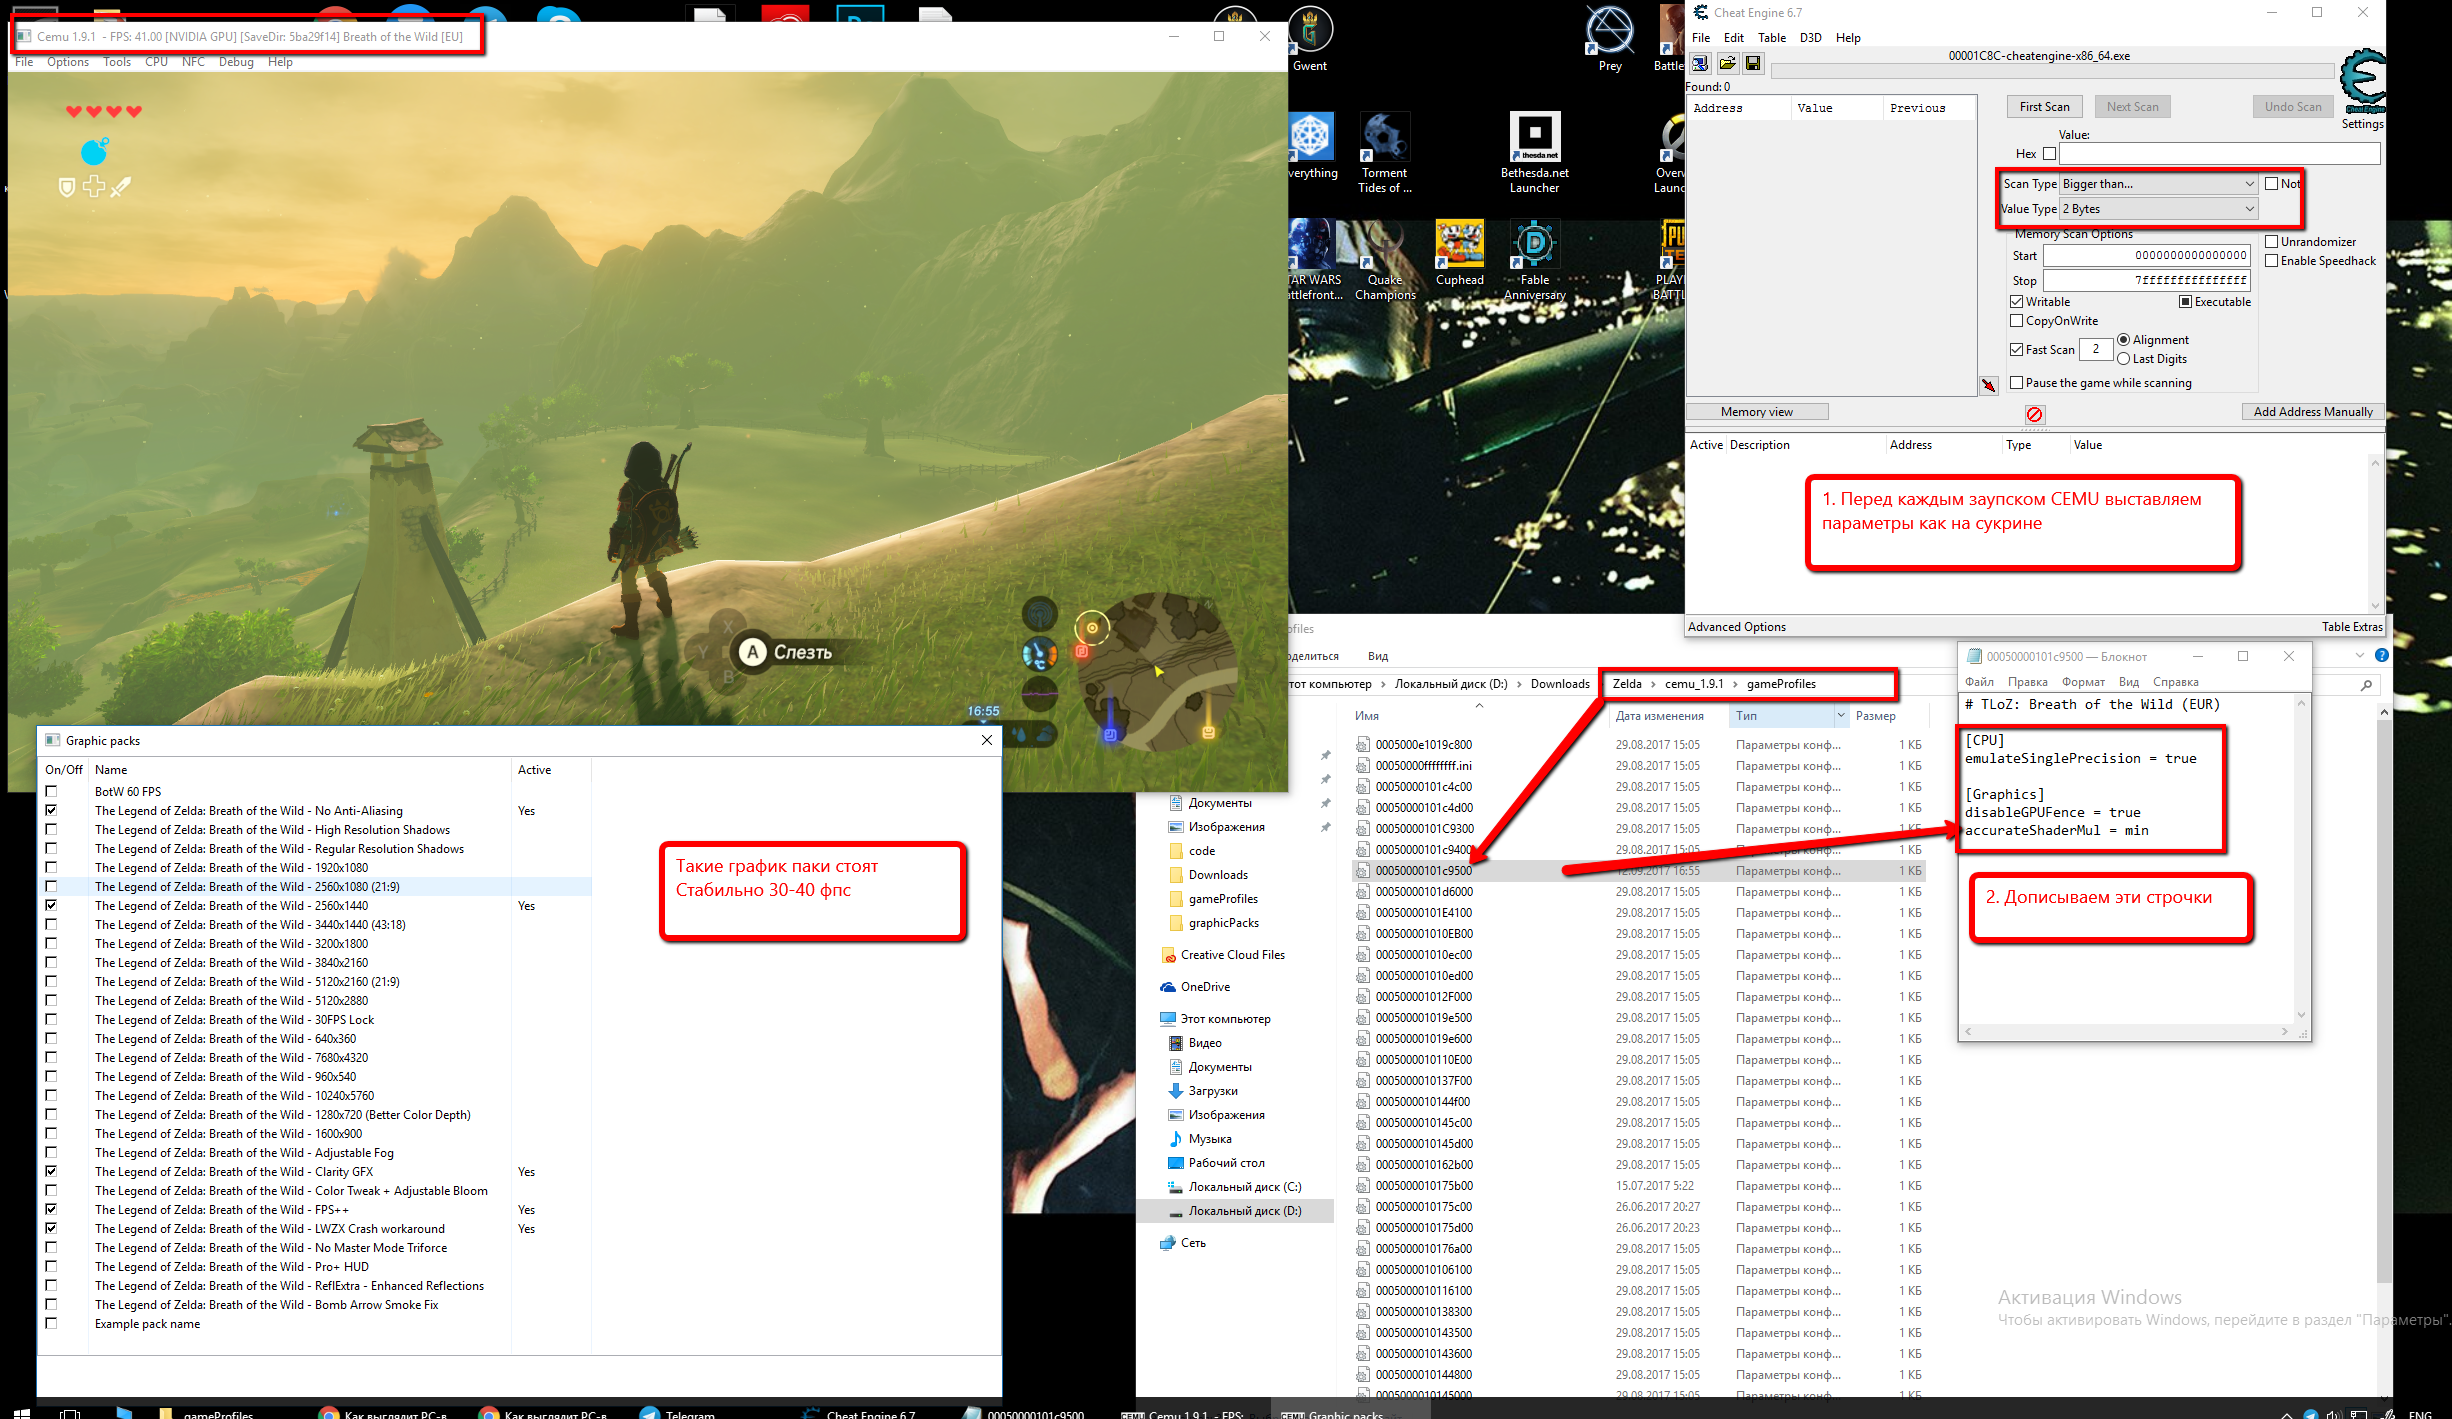 Zelda_PC_CEMU_Config - Legend of Zelda: Breath of the Wild Zelda_Config